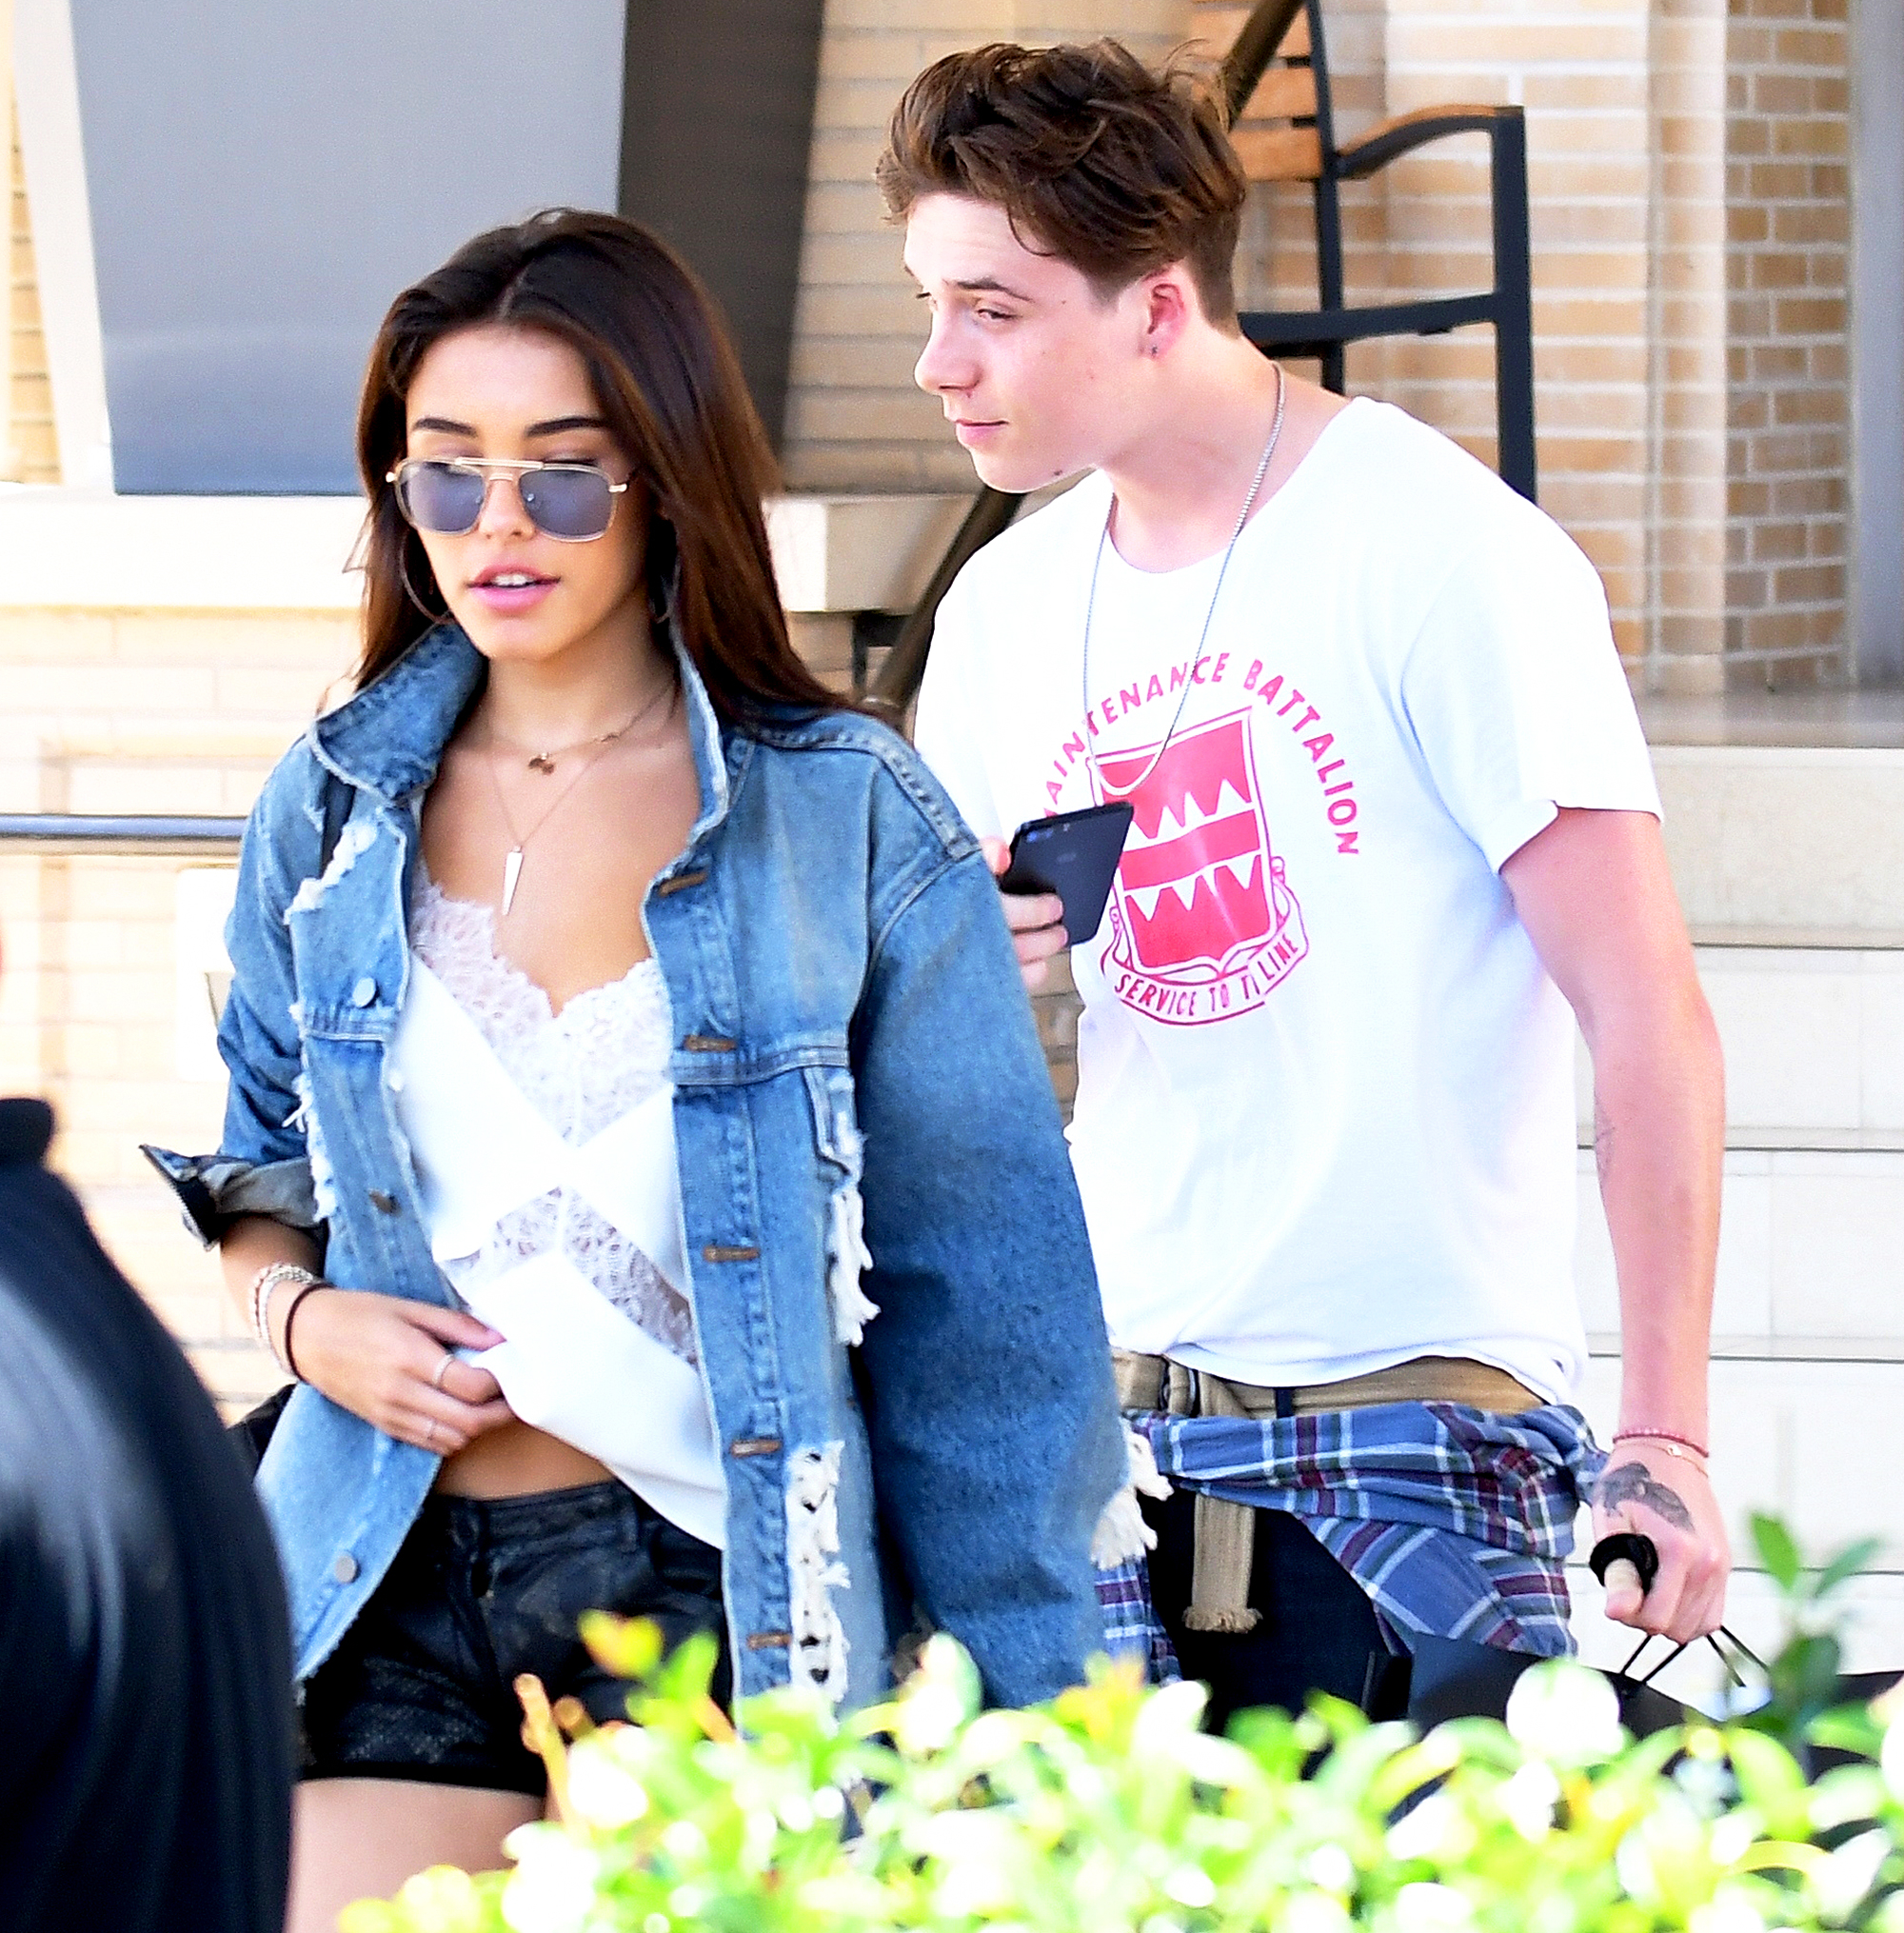 Madison Beer and Brooklyn Beckham